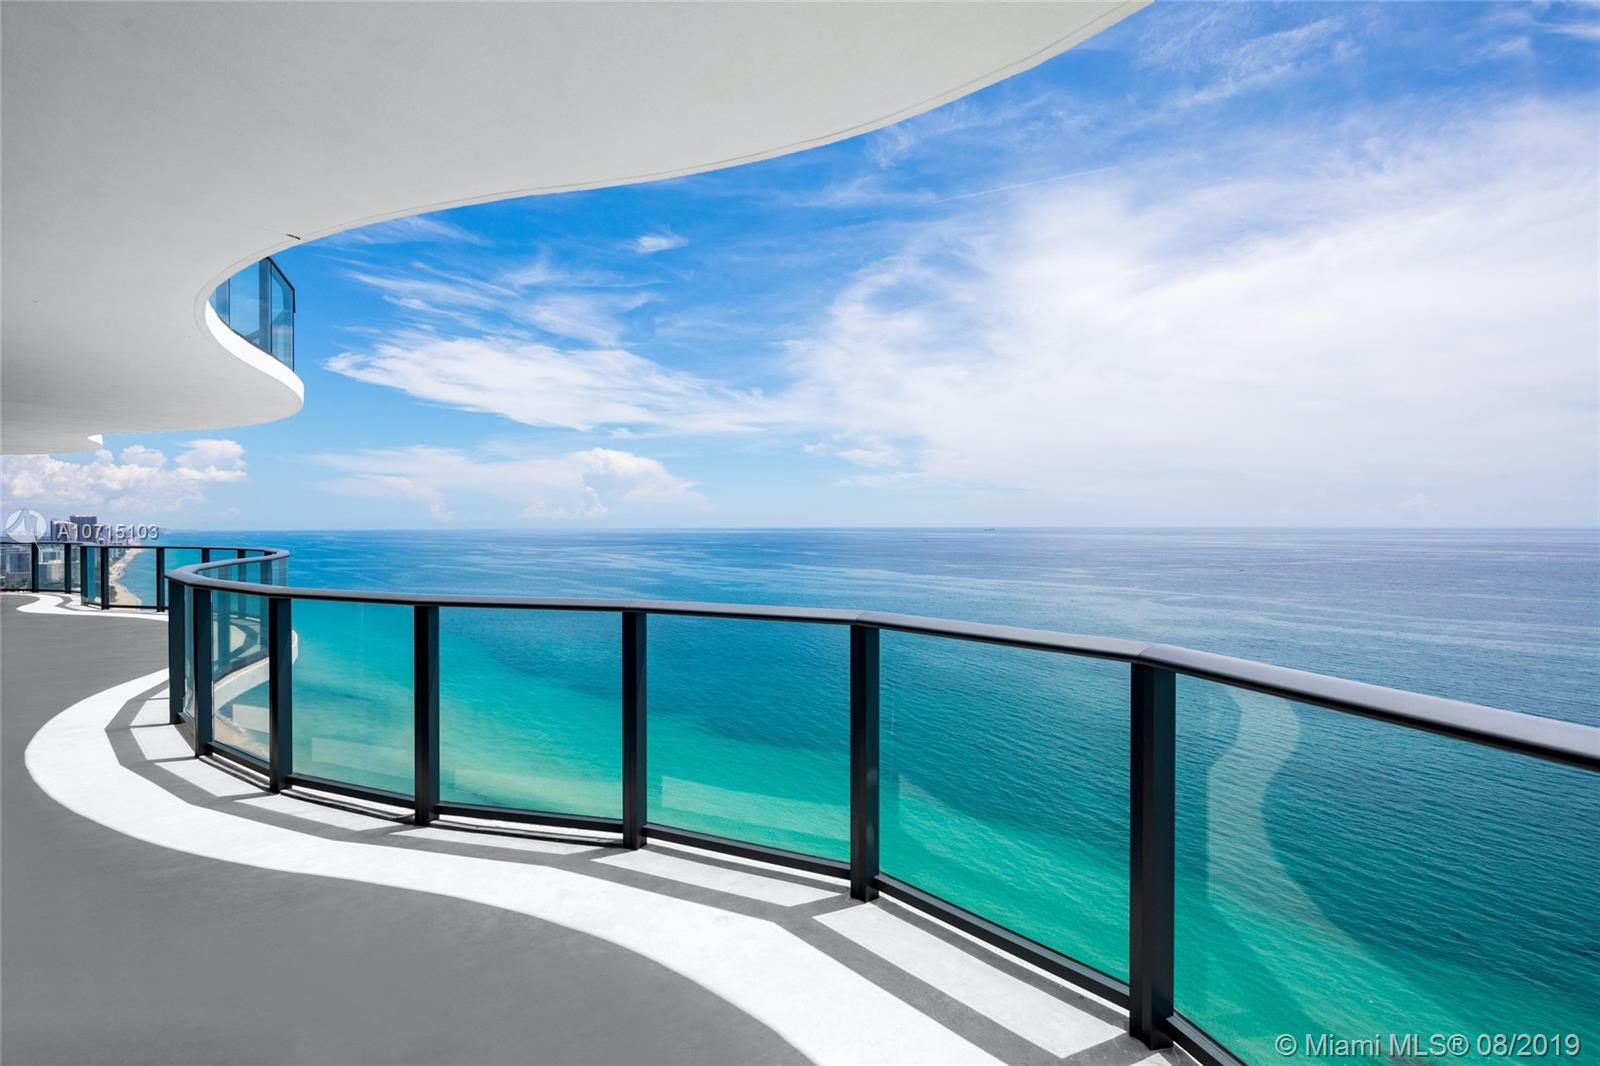 19575 Collins Ave, Unit #38 Luxury Real Estate